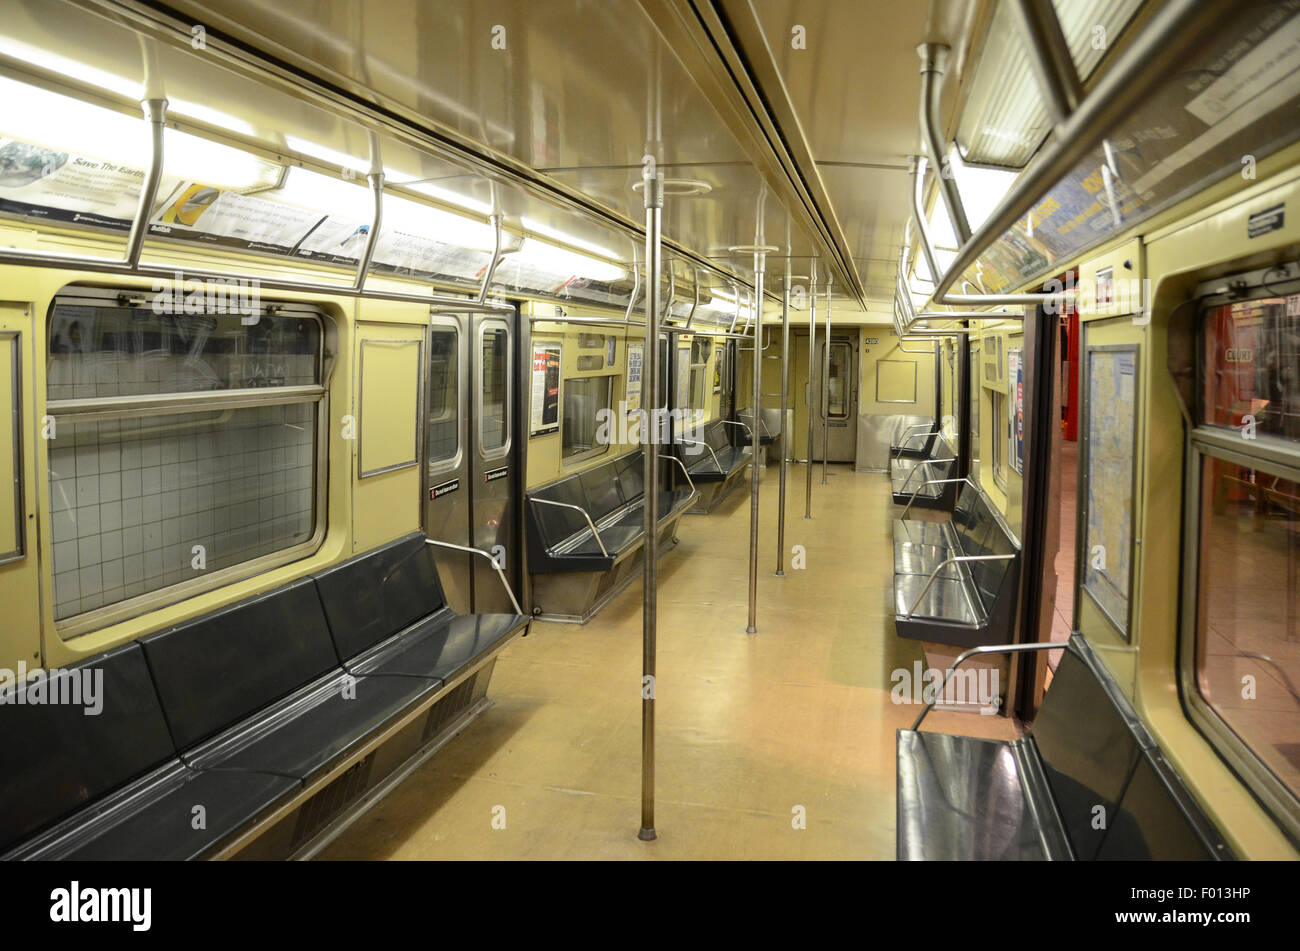 New York Transit Museum carriage subway vintage subway 1968; yellow livery vintage adverts hand rails grey gray - Stock Image